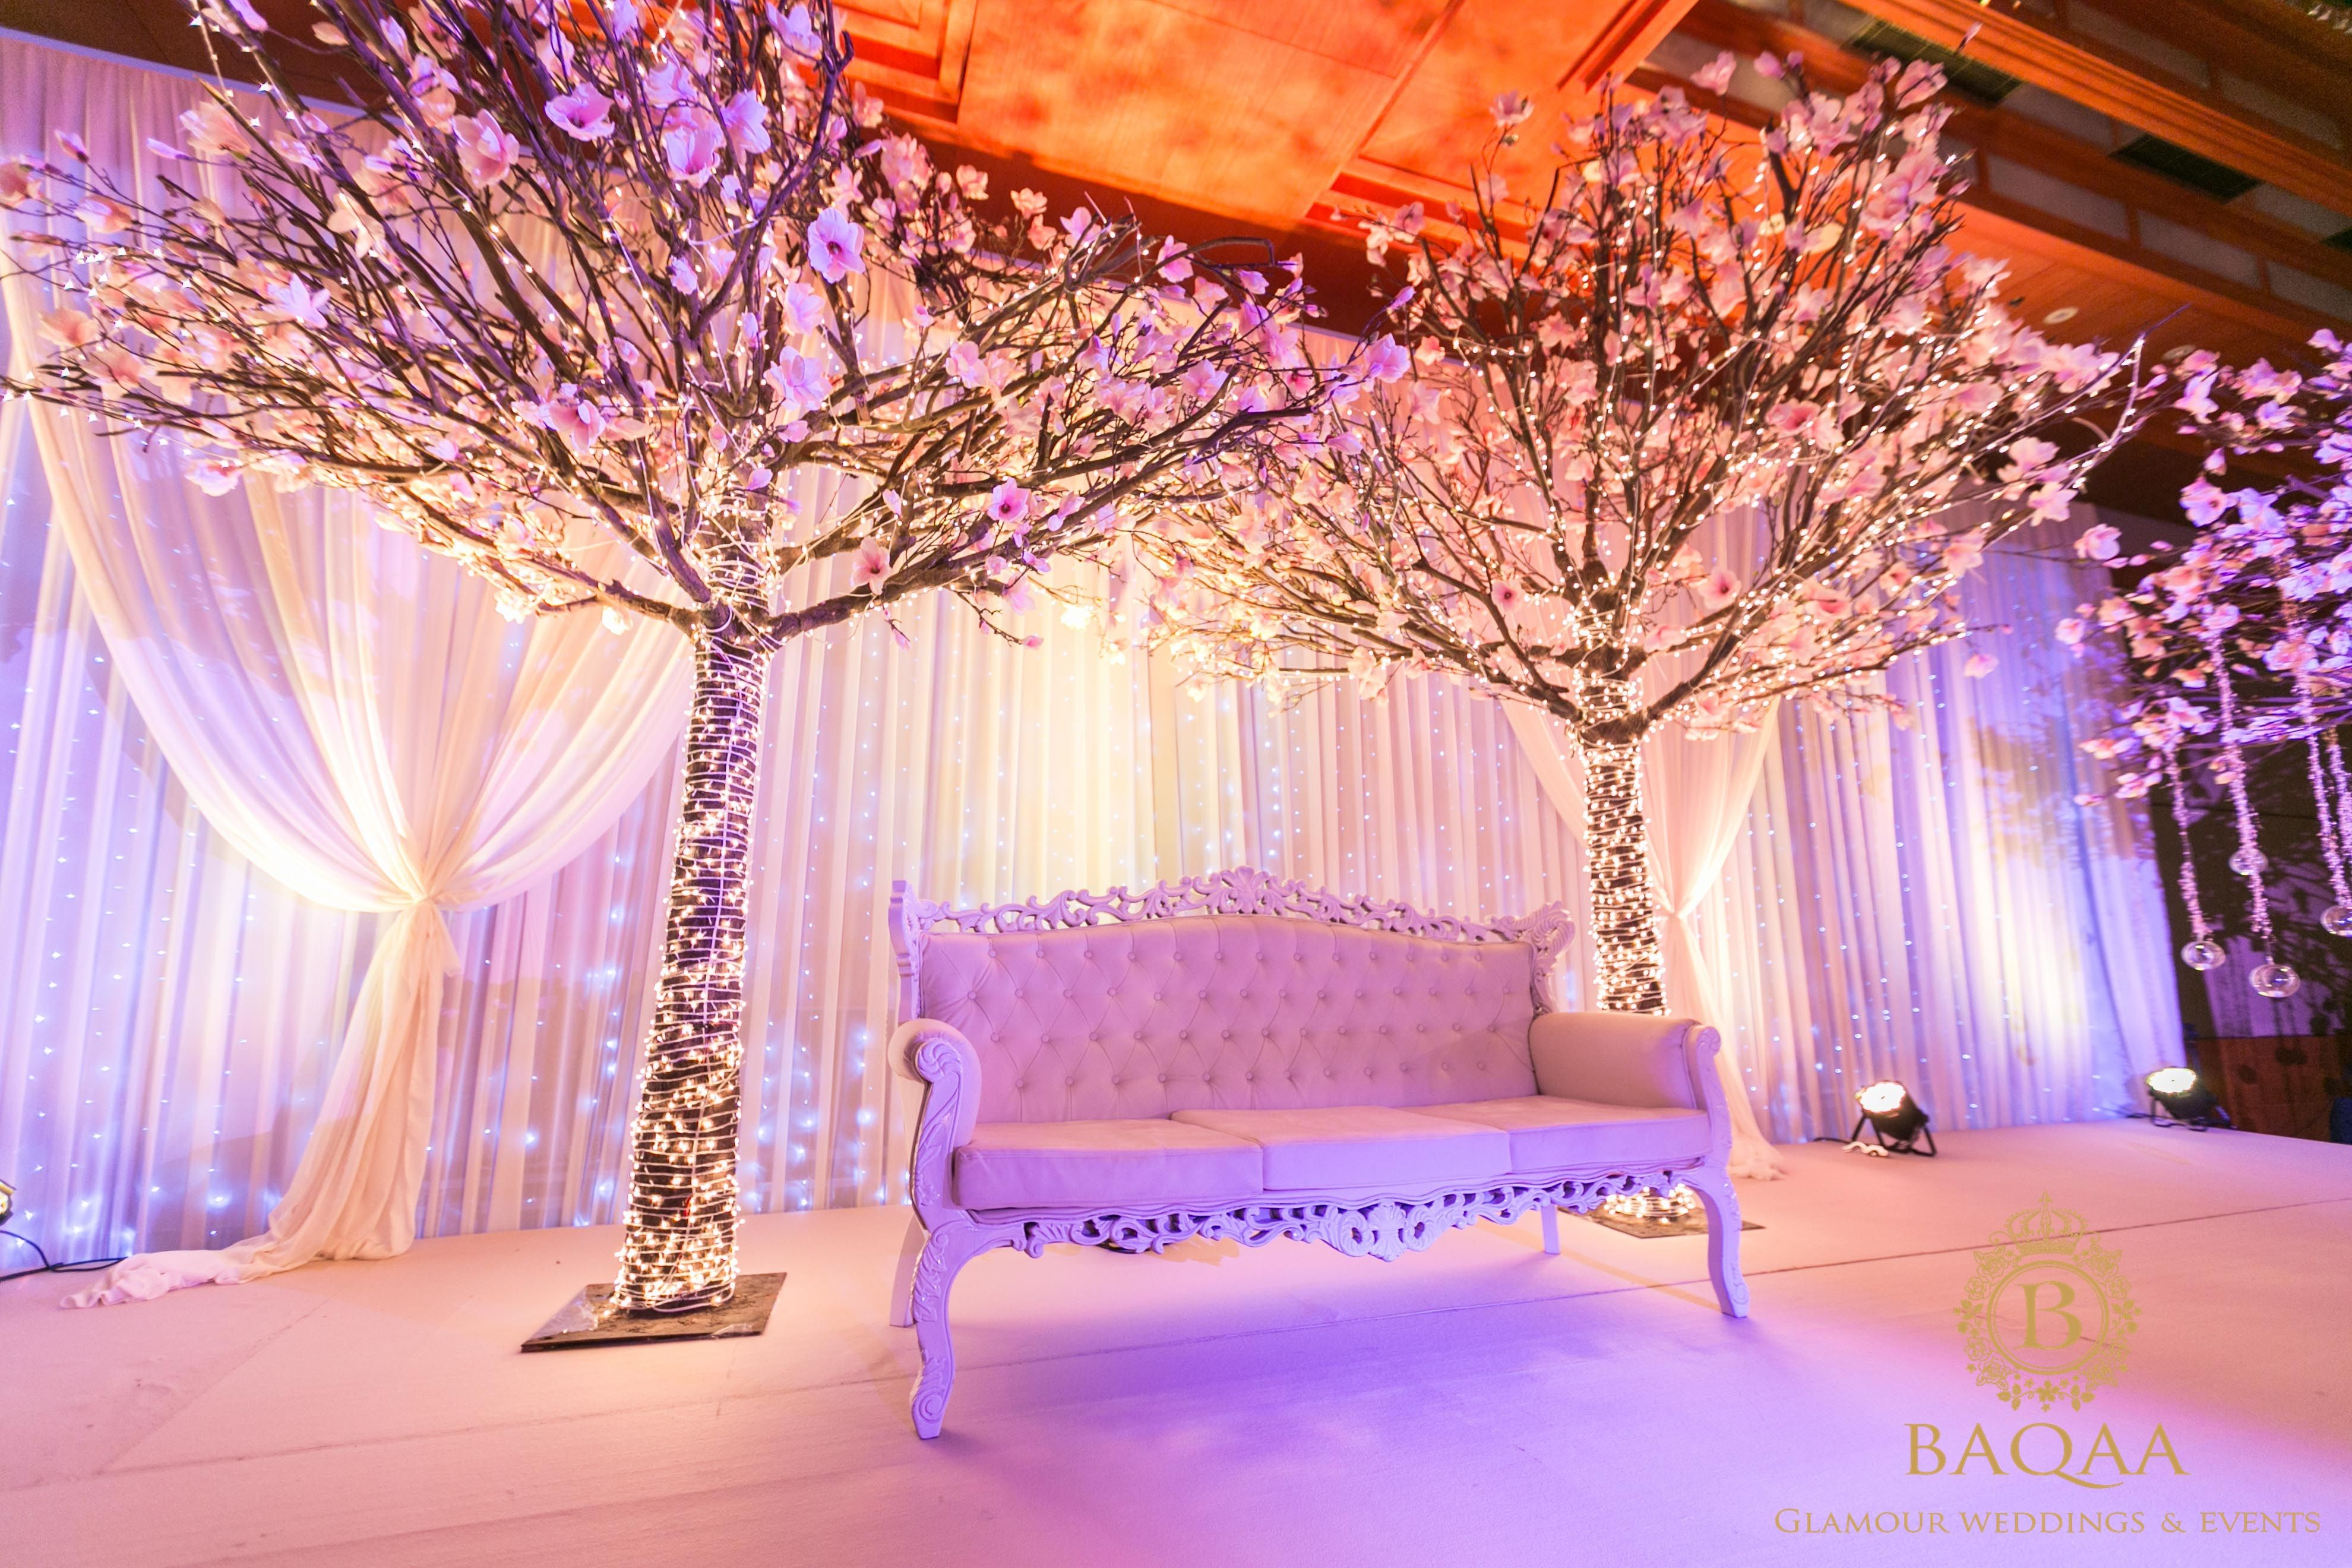 Pin by BAQAA Glamour Weddings and Eve on A Twinkling